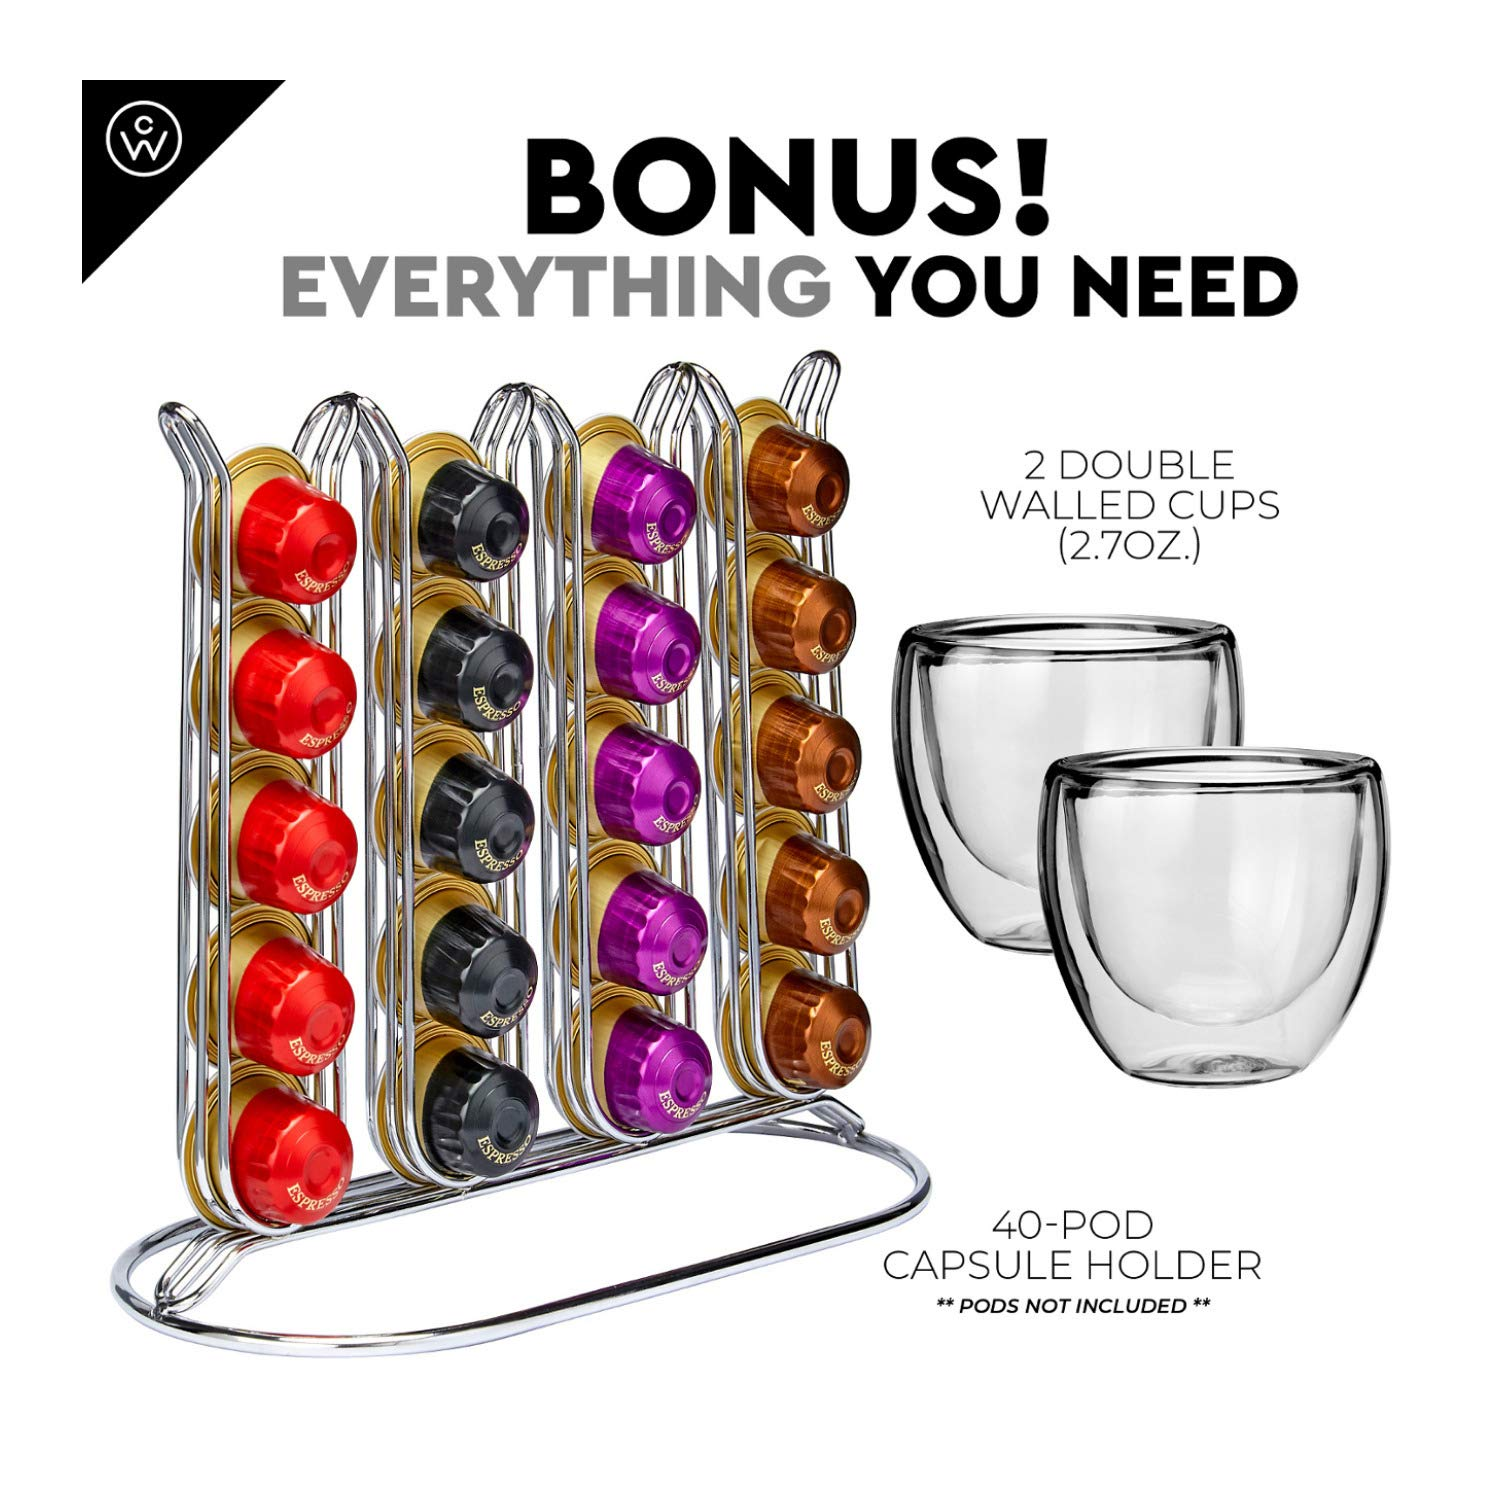 ChefWave Mini Espresso Machine - Nespresso Capsules Compatible - Programmable One-Touch 27 Oz. Water Tank, Premium Italian 20 Bar High Pressure Pump - 40 Pod Holder, 2 Double-Wall Glass Cups - White by ChefWave (Image #6)